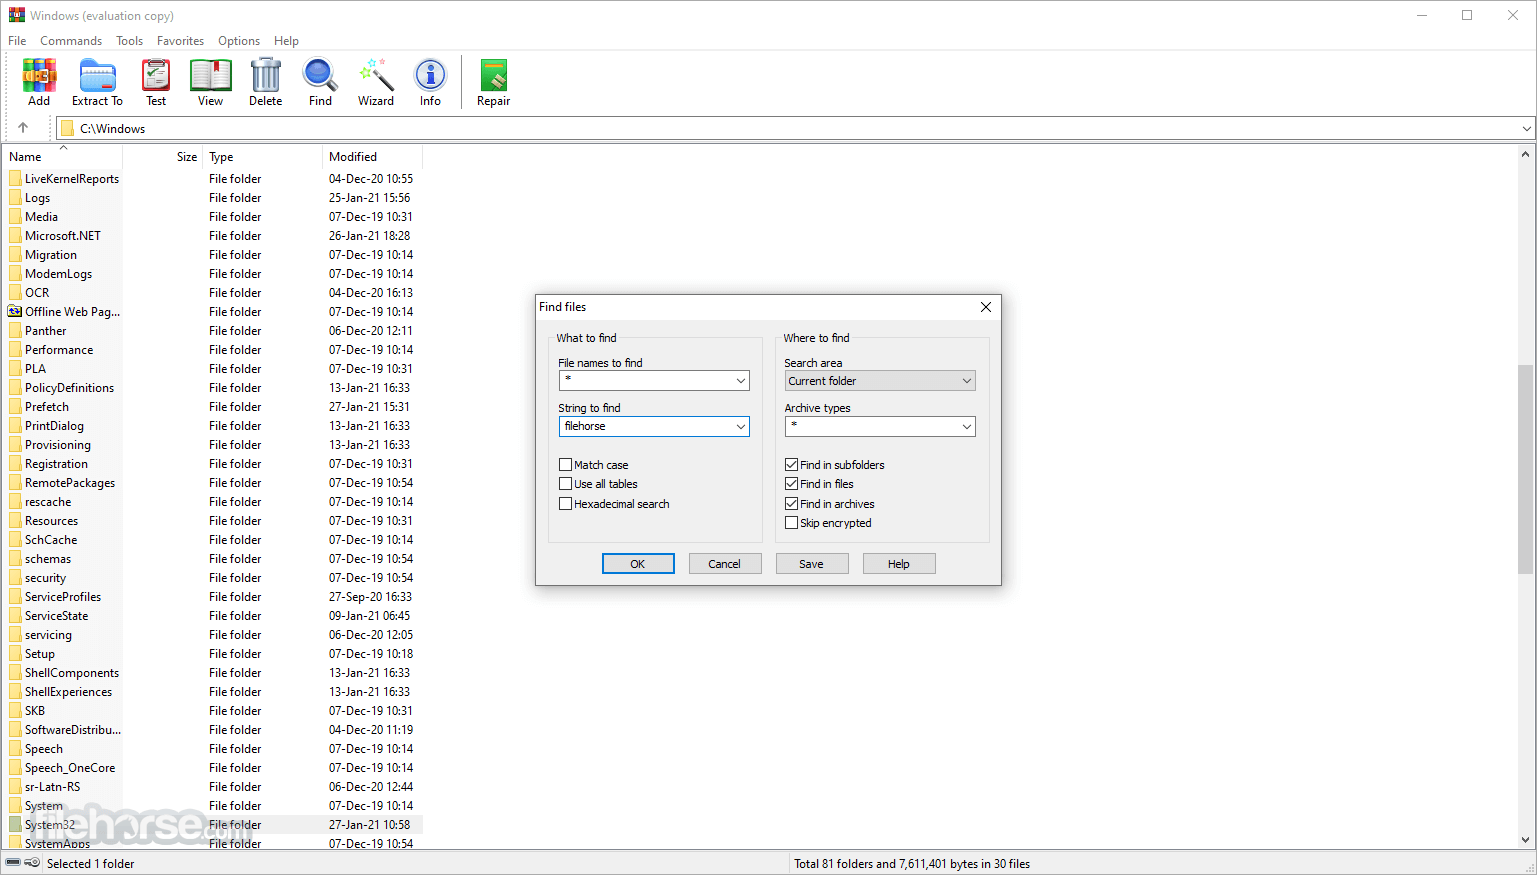 WinRAR 5.50 Beta 4 (32-bit) Screenshot 3